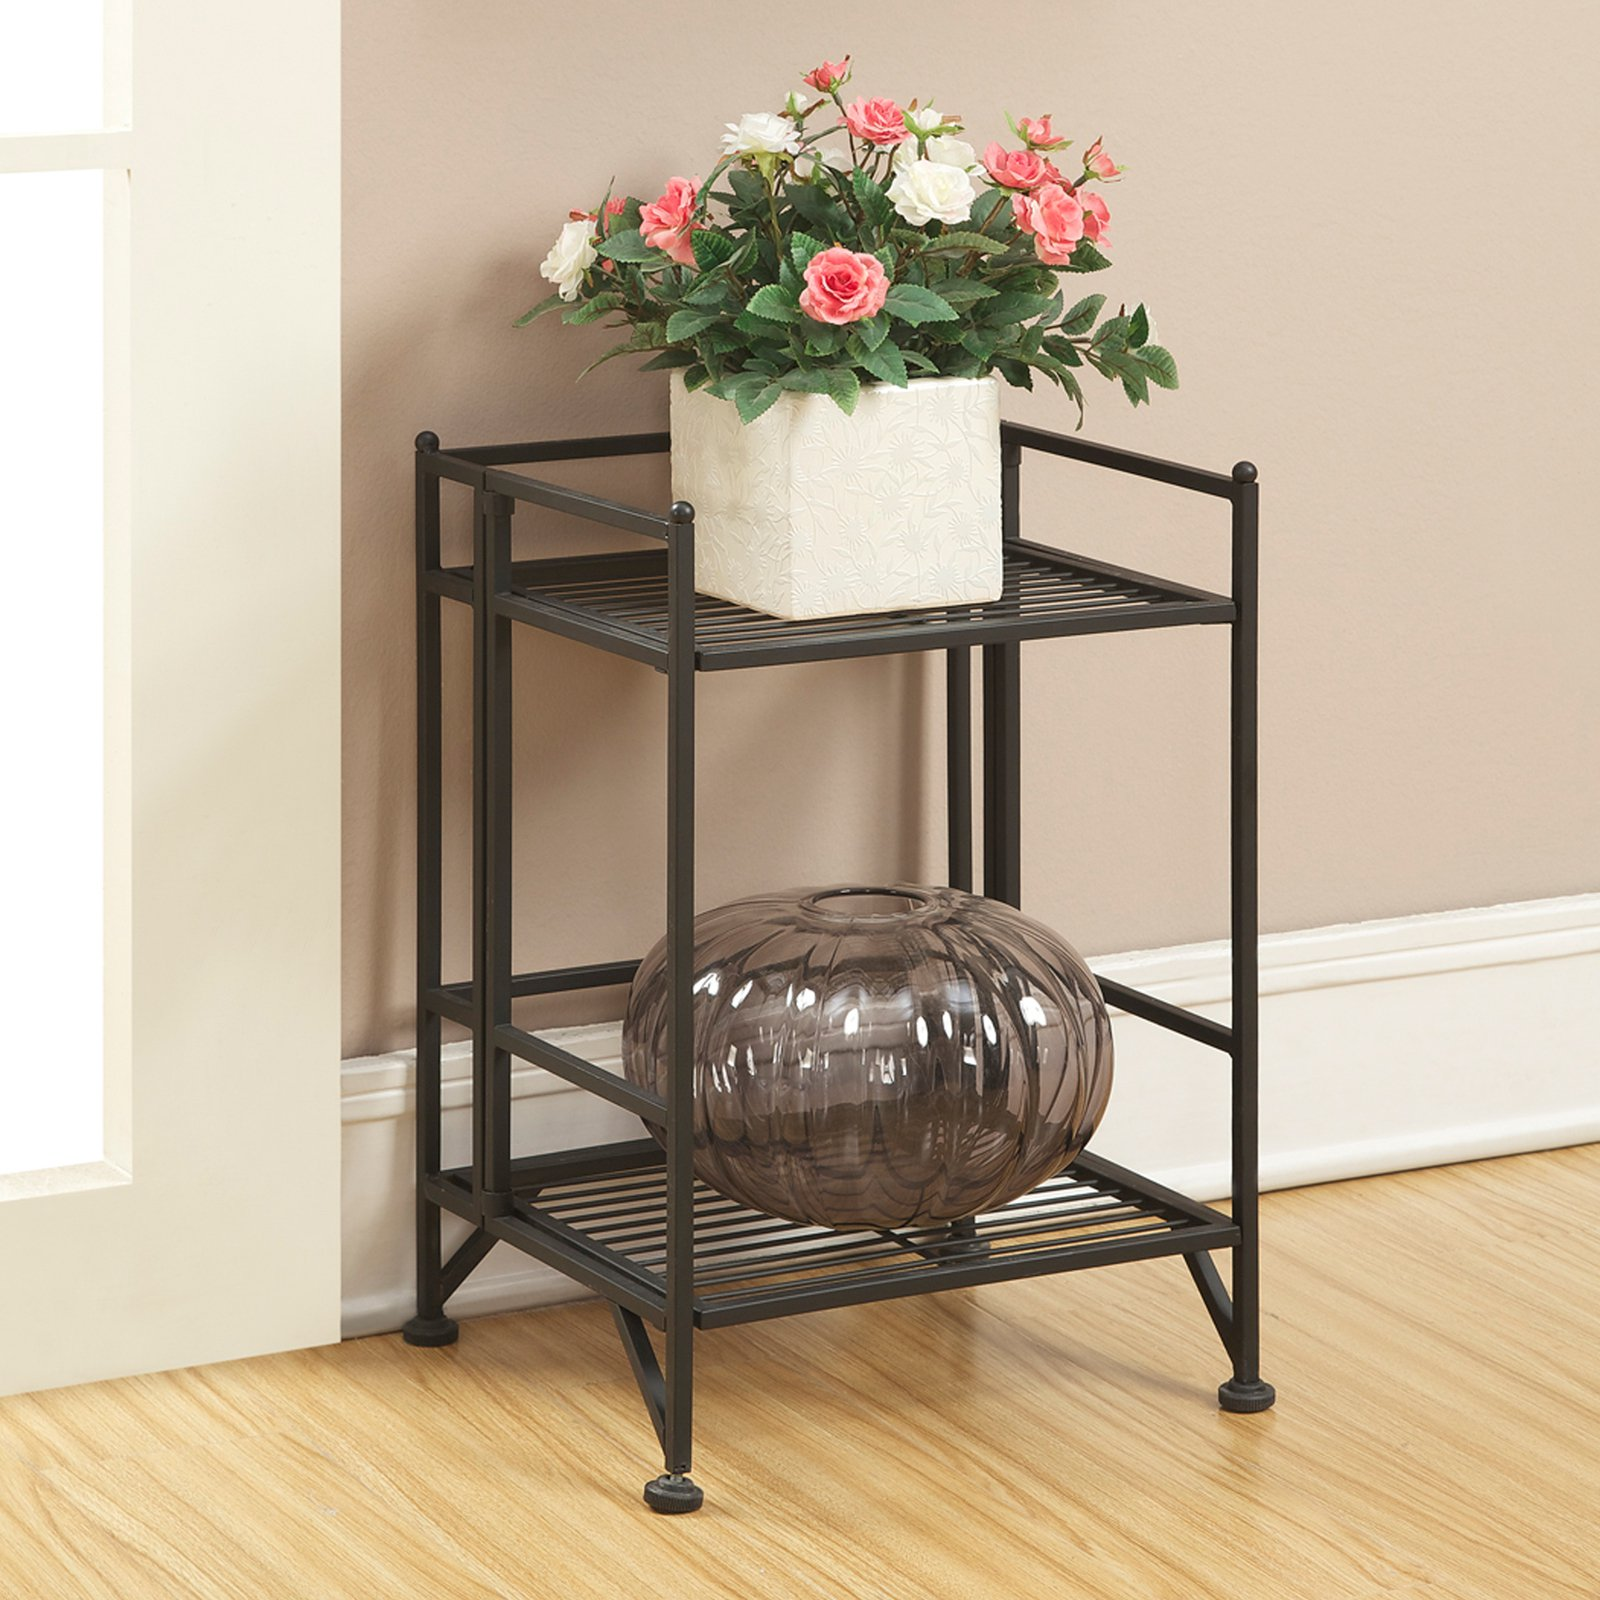 Designs2Go Storage Rack